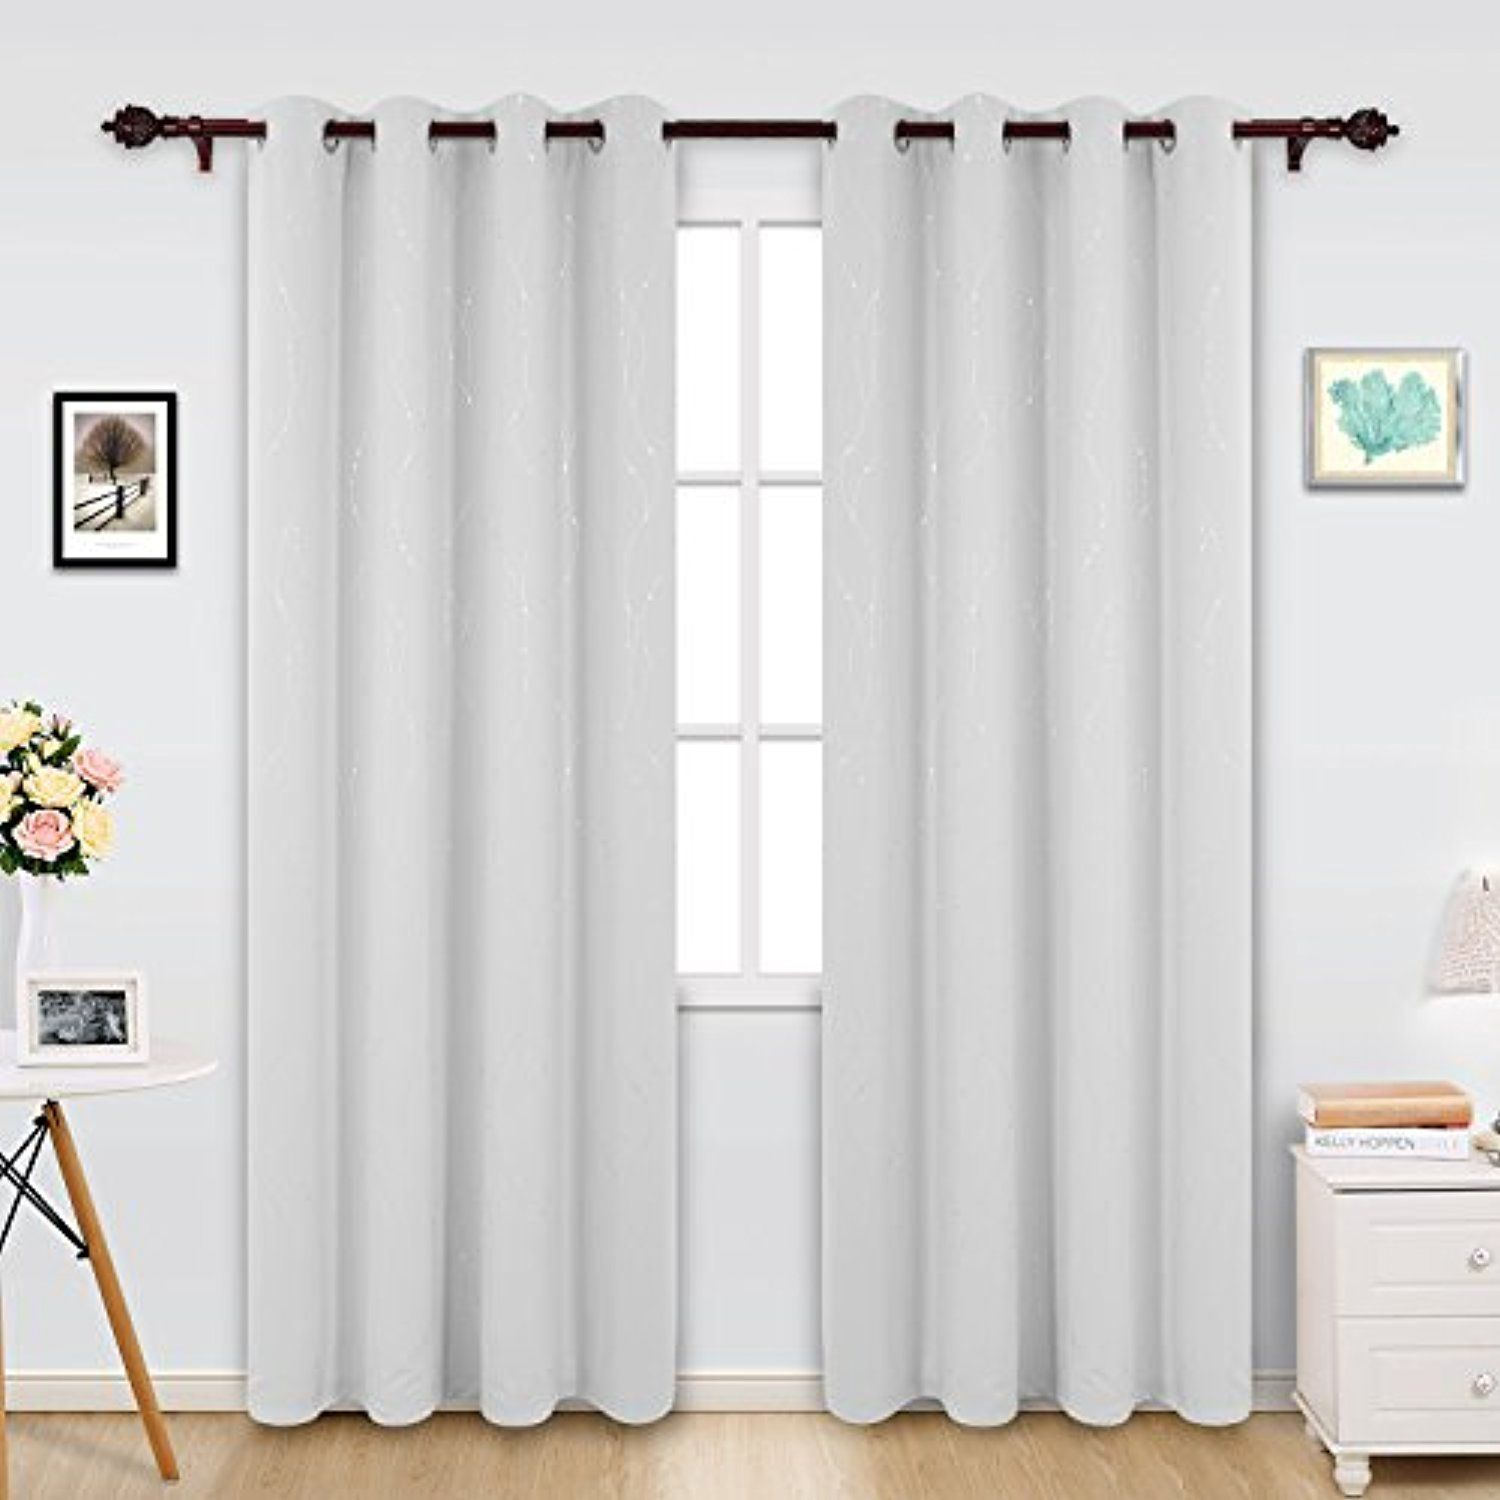 Deconovo Printed White Blackout Curtains Wave Line With Dots Grommet Blackout Window Curtains For Bedroom 52 White Blackout Curtains Curtains Blackout Curtains